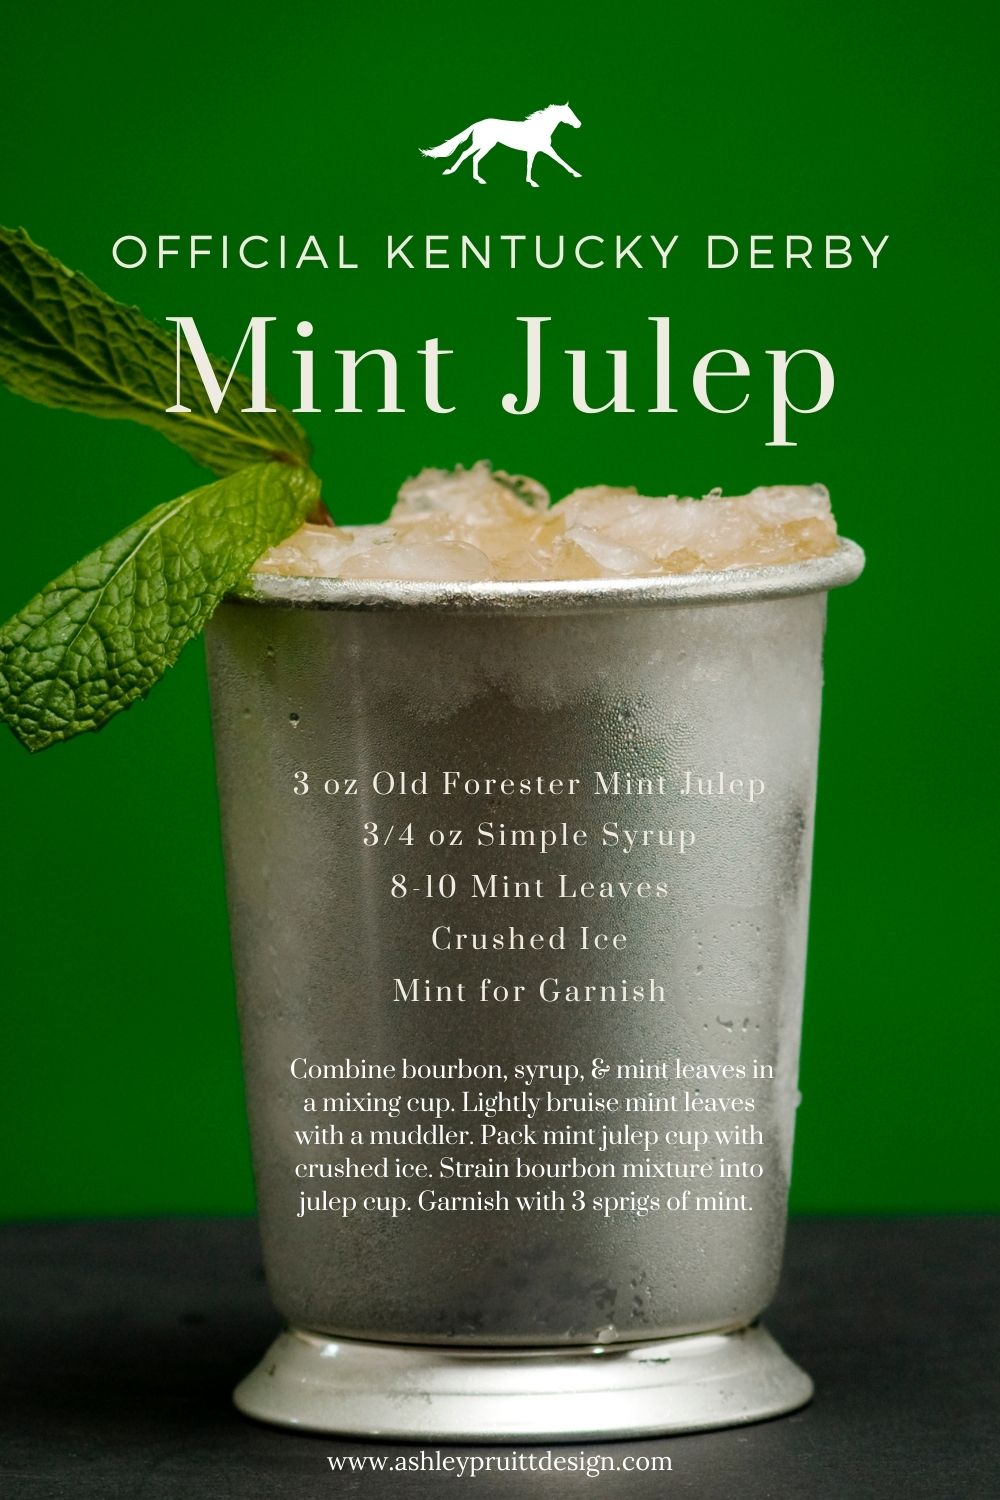 The $2500 Kentucky Derby Mint Julep And How To Make Your Own